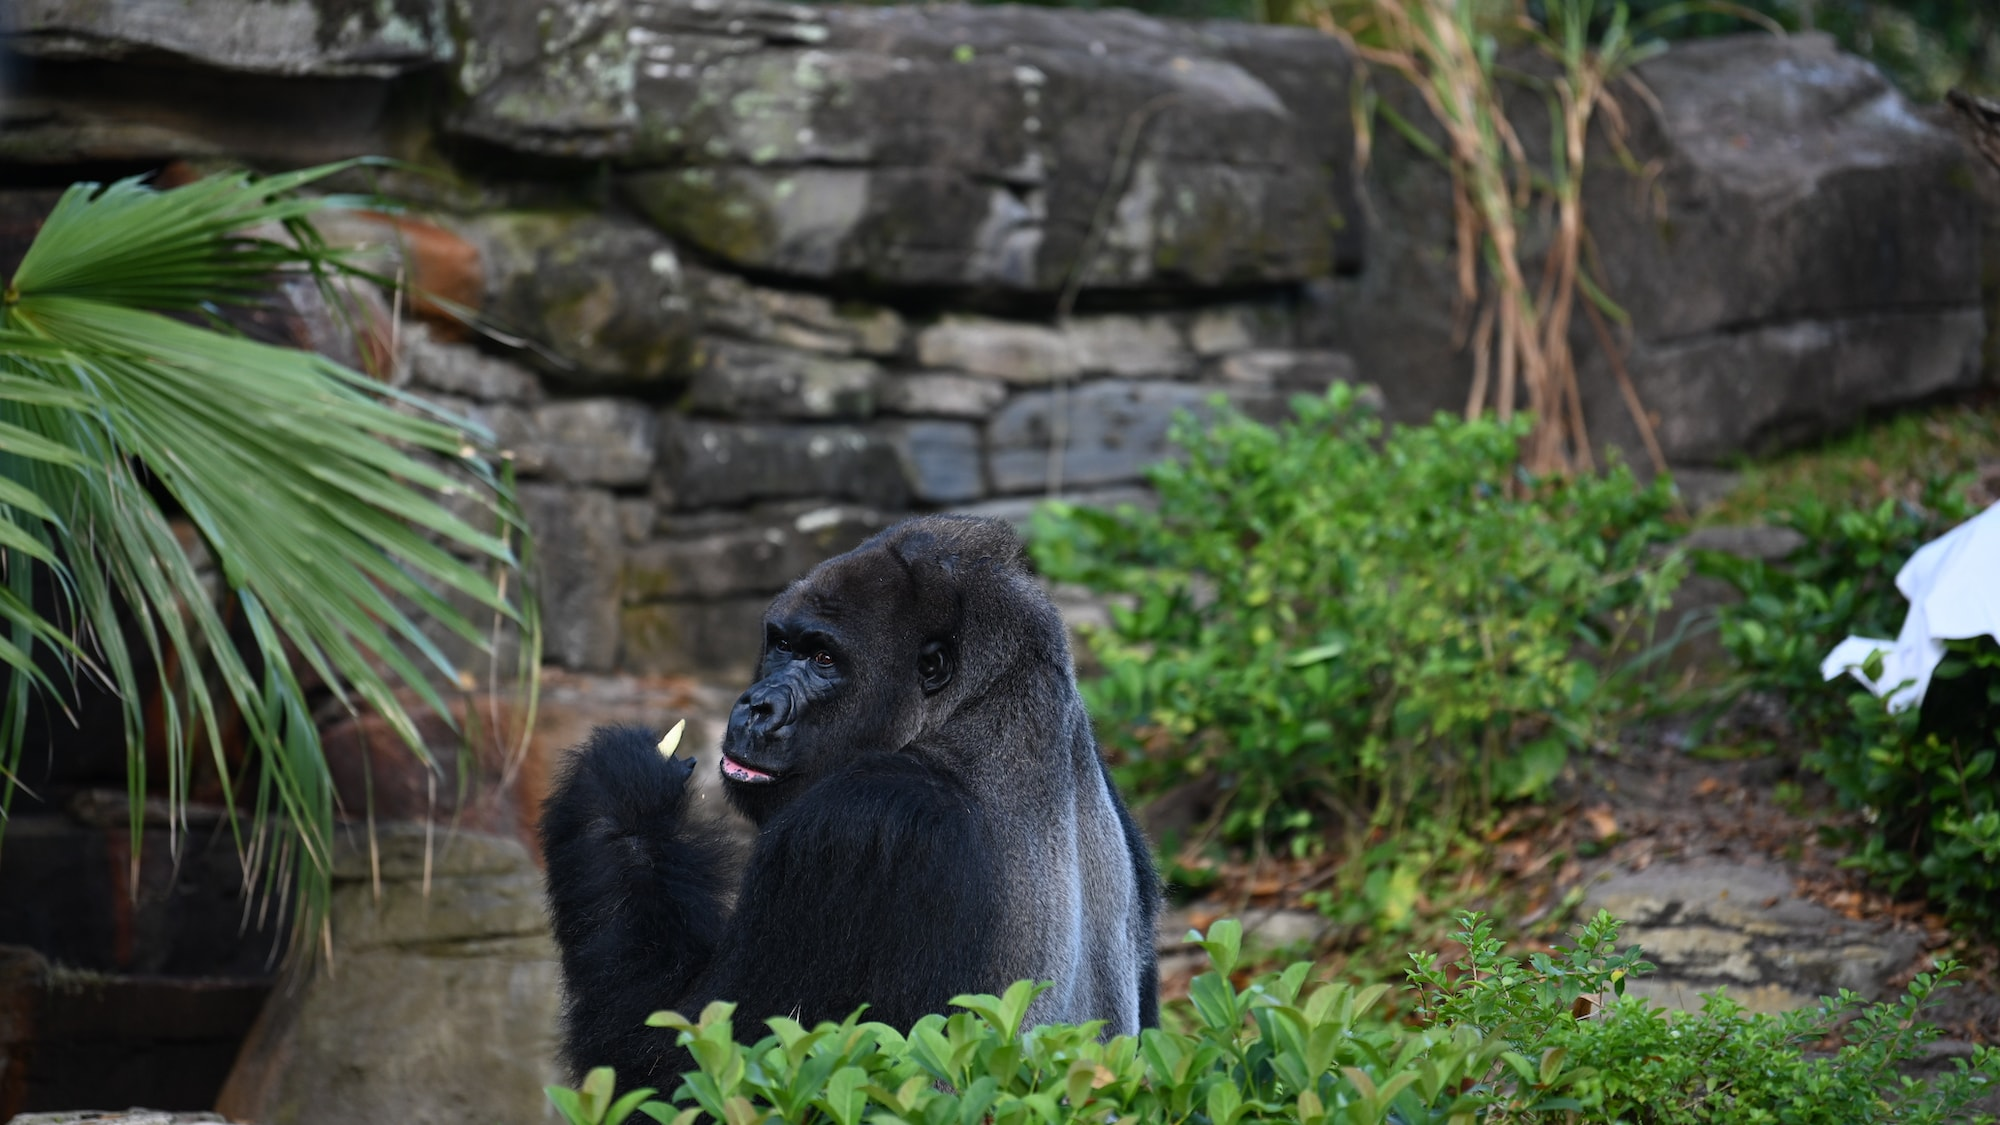 Gino the Gorilla eating. (National Geographic/Gene Page)